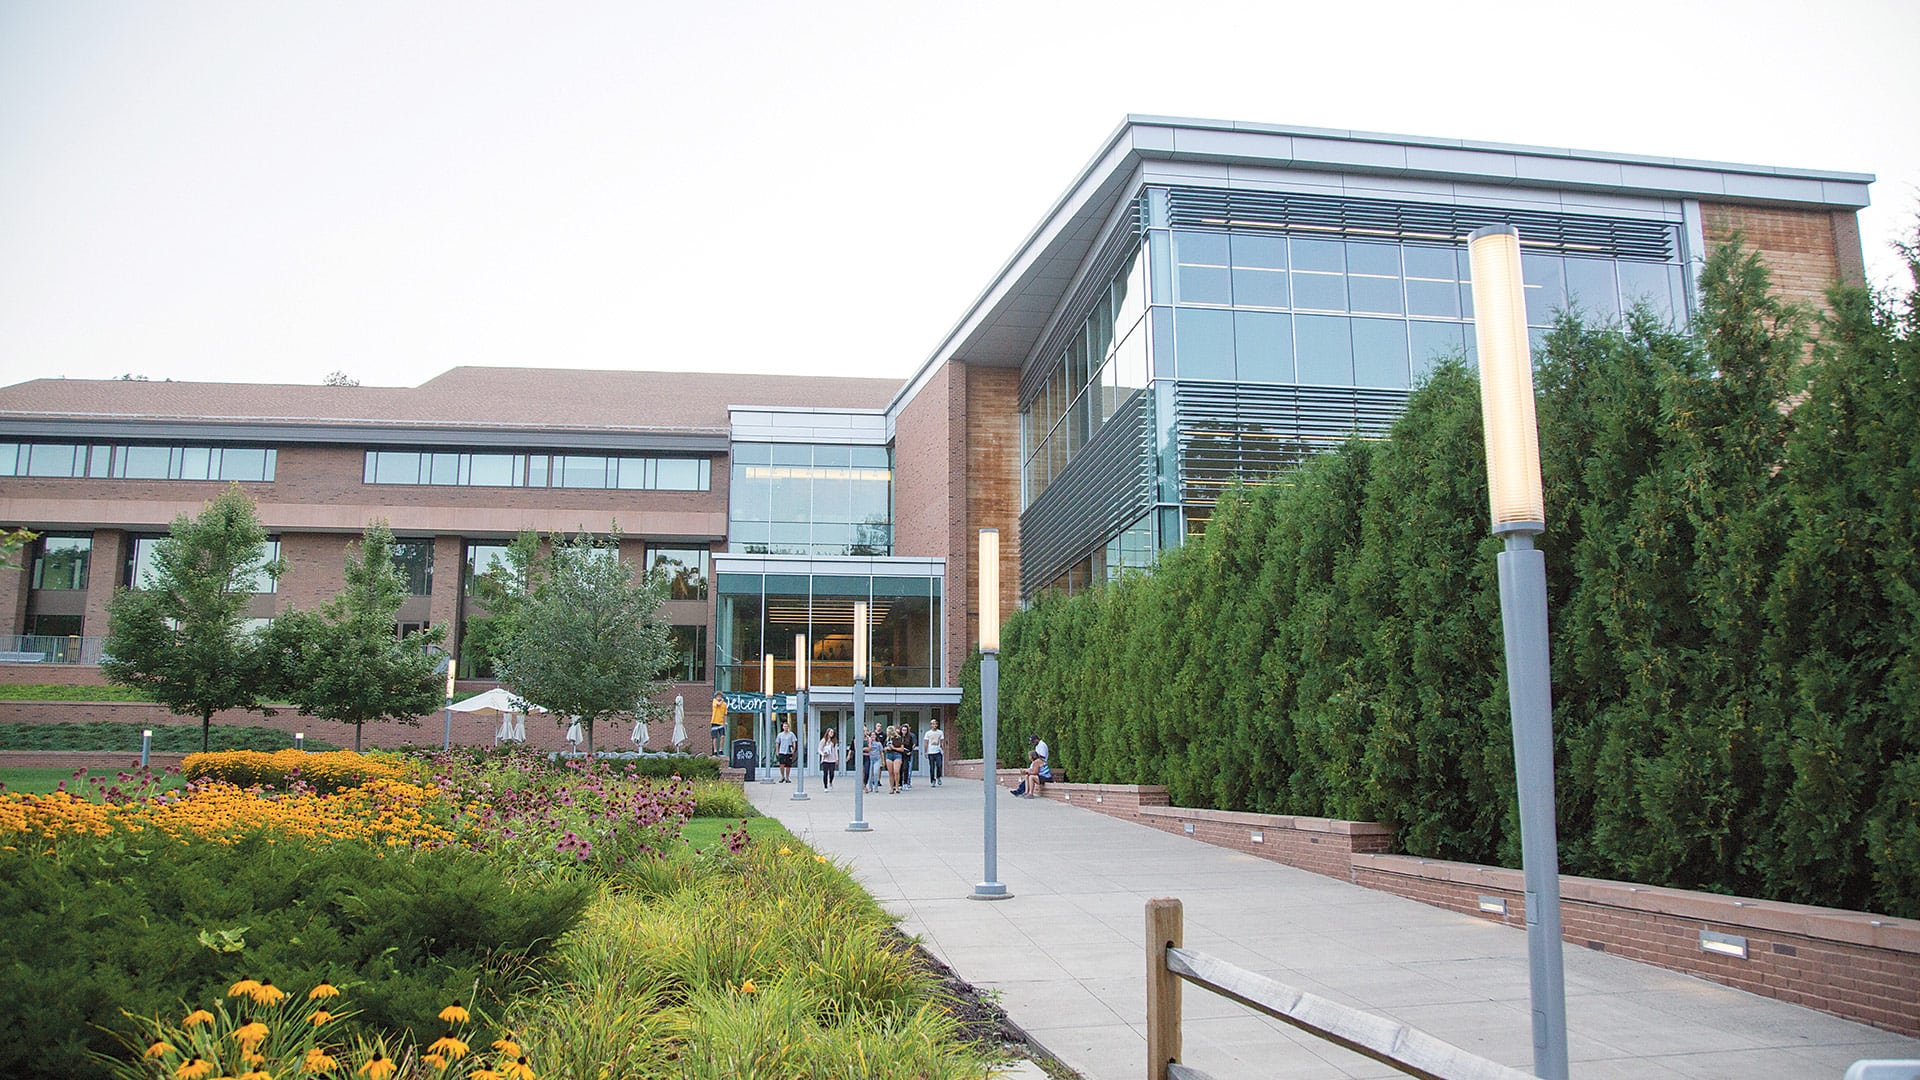 GCC campus, as a whole, is innovative and entrepreneurial